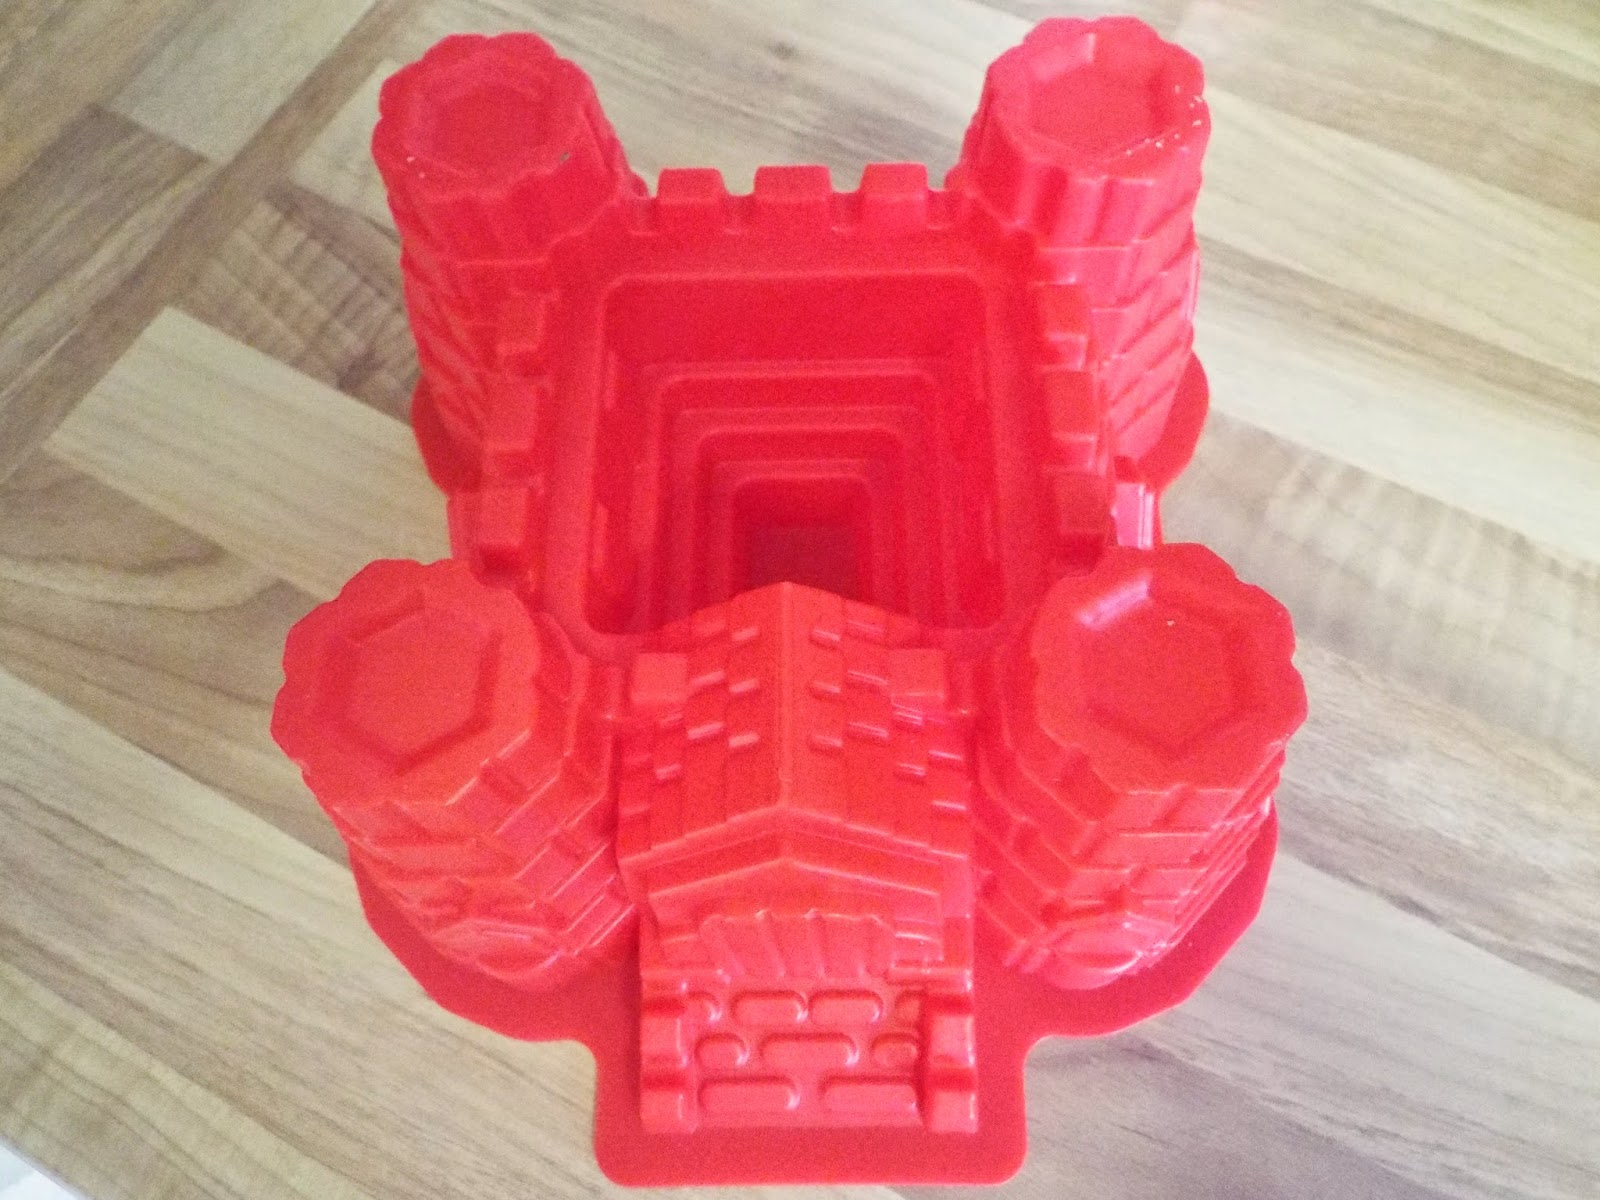 Recipes for silicone cake moulds